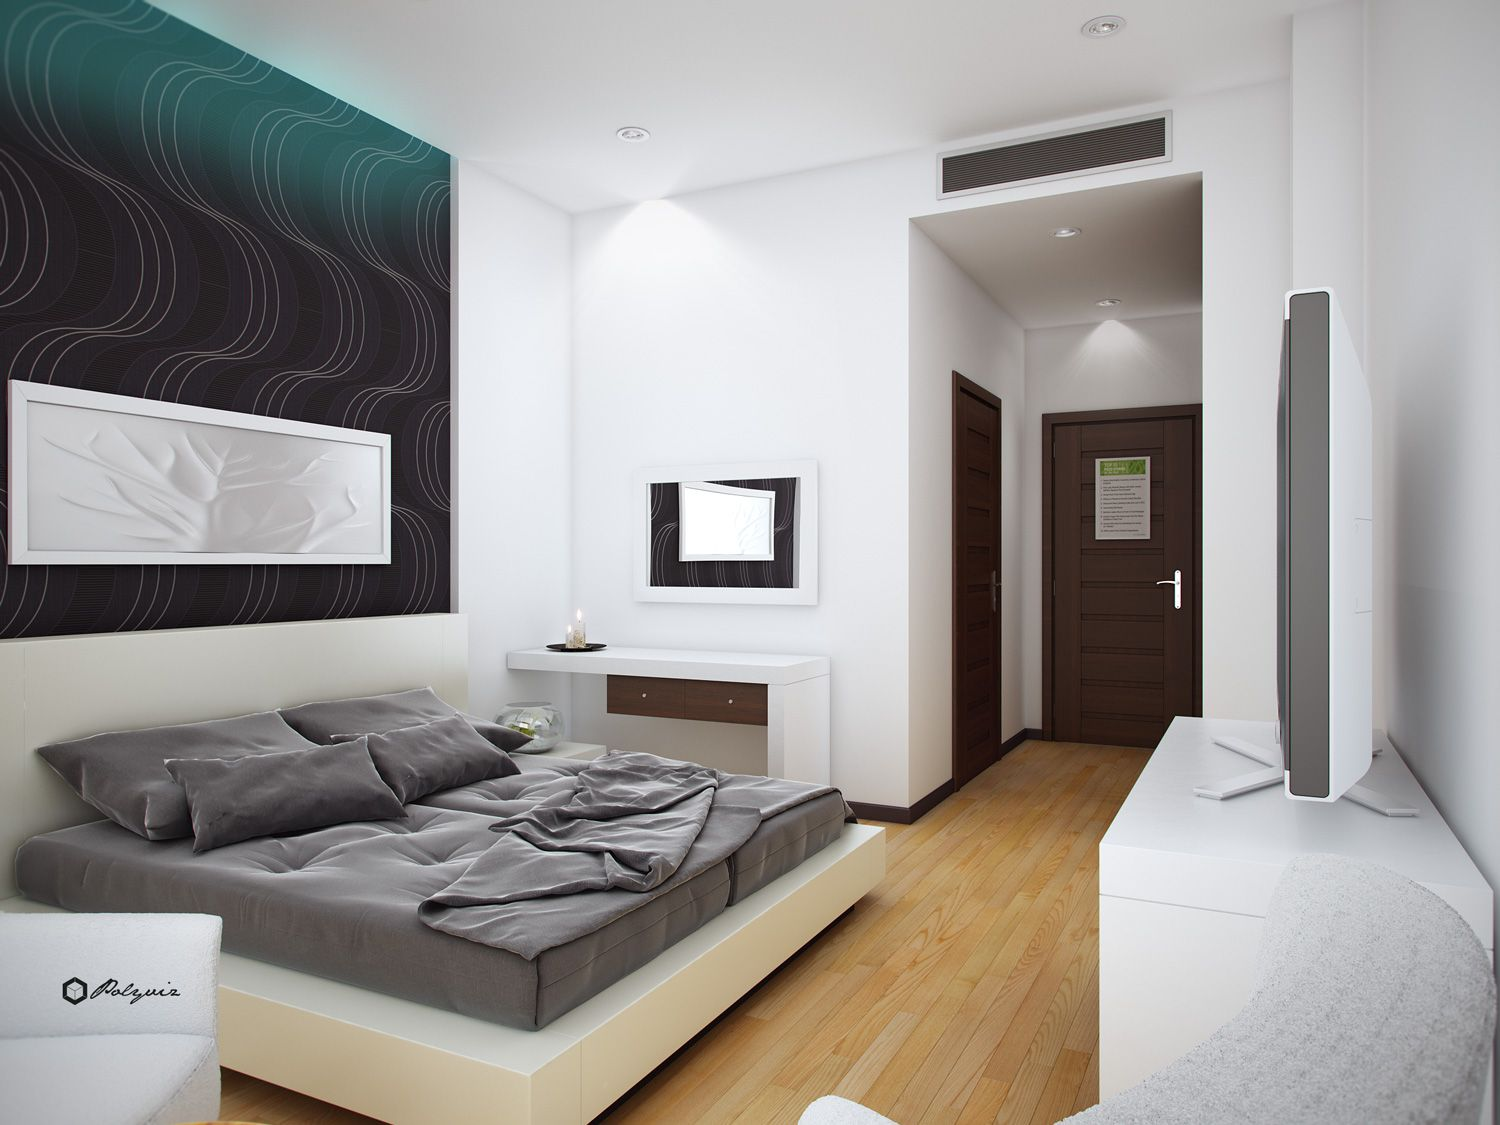 Modern Hotel Room Design Google Search Room Design